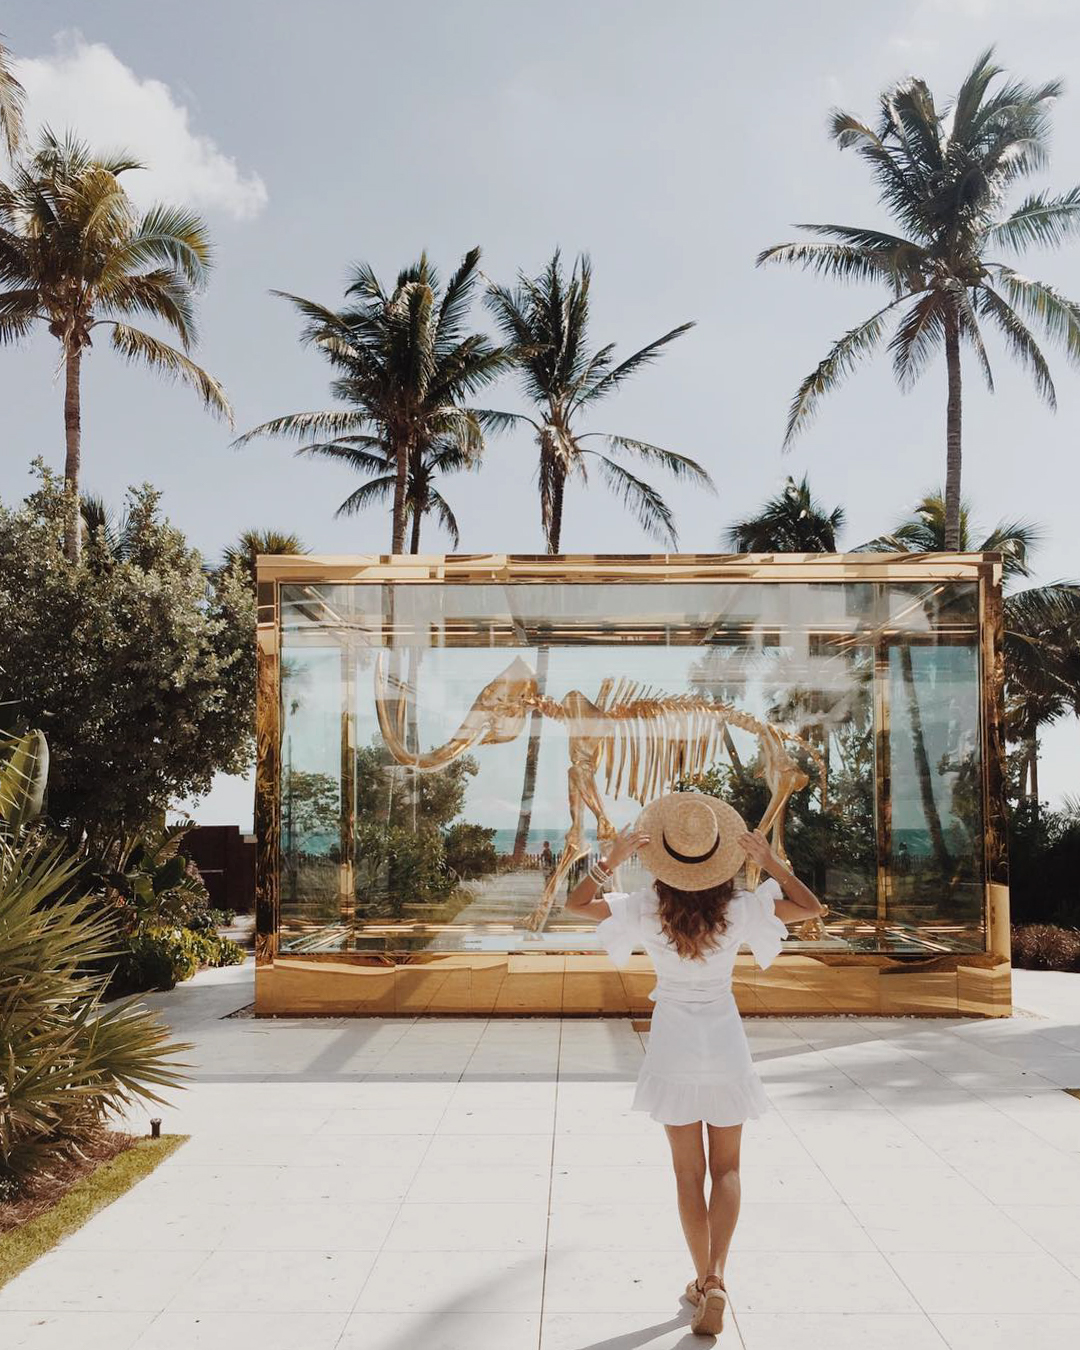 bachelorette cities miami women standing by palm trees and golden dinosaur skeleton